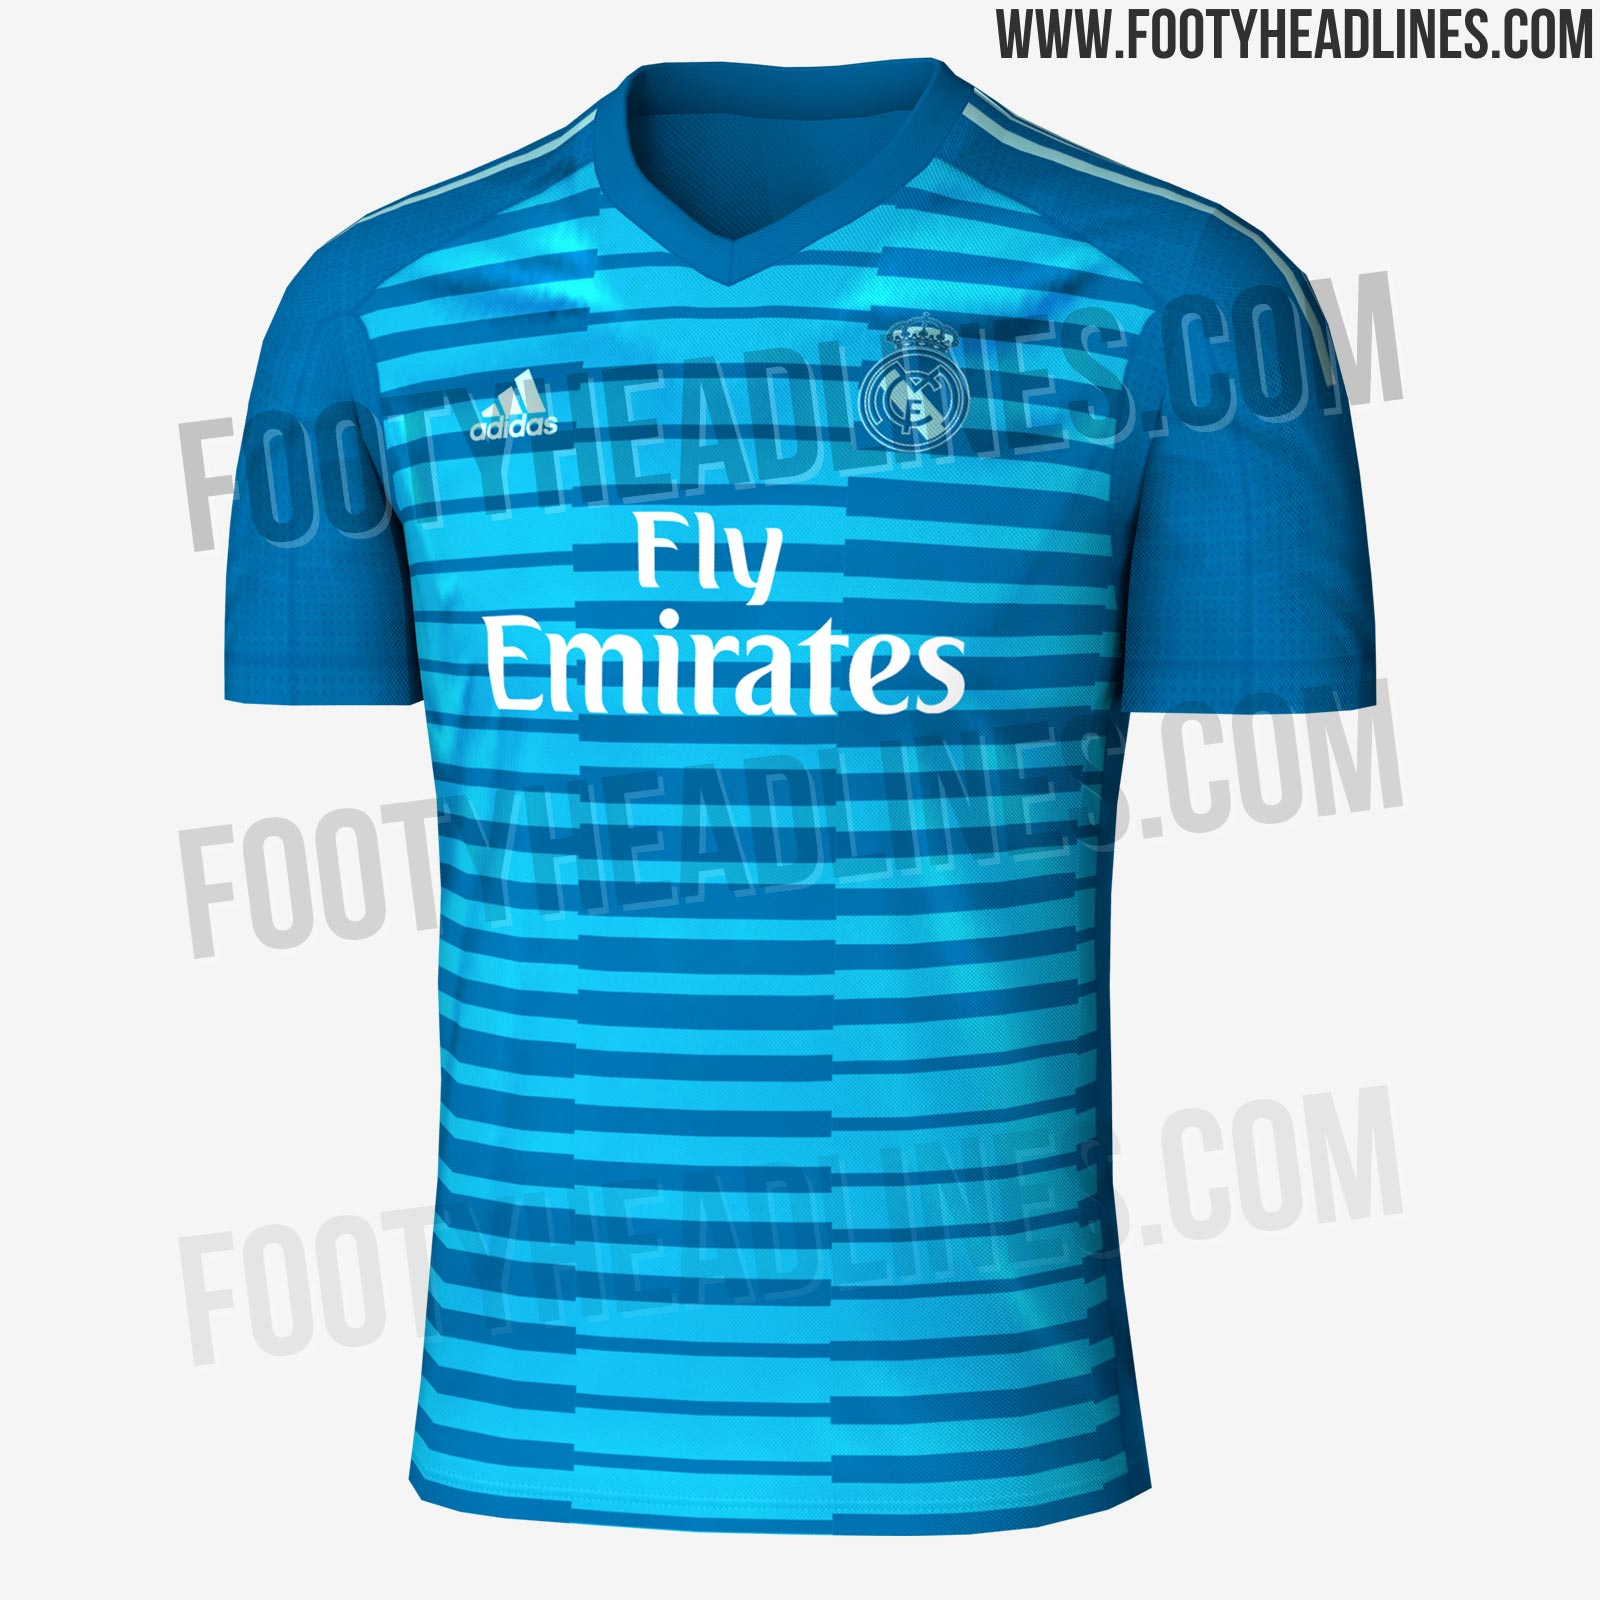 the best attitude 961a0 33bdc Real Madrid 18-19 Goalkeeper Home & Away Kits Leaked ...